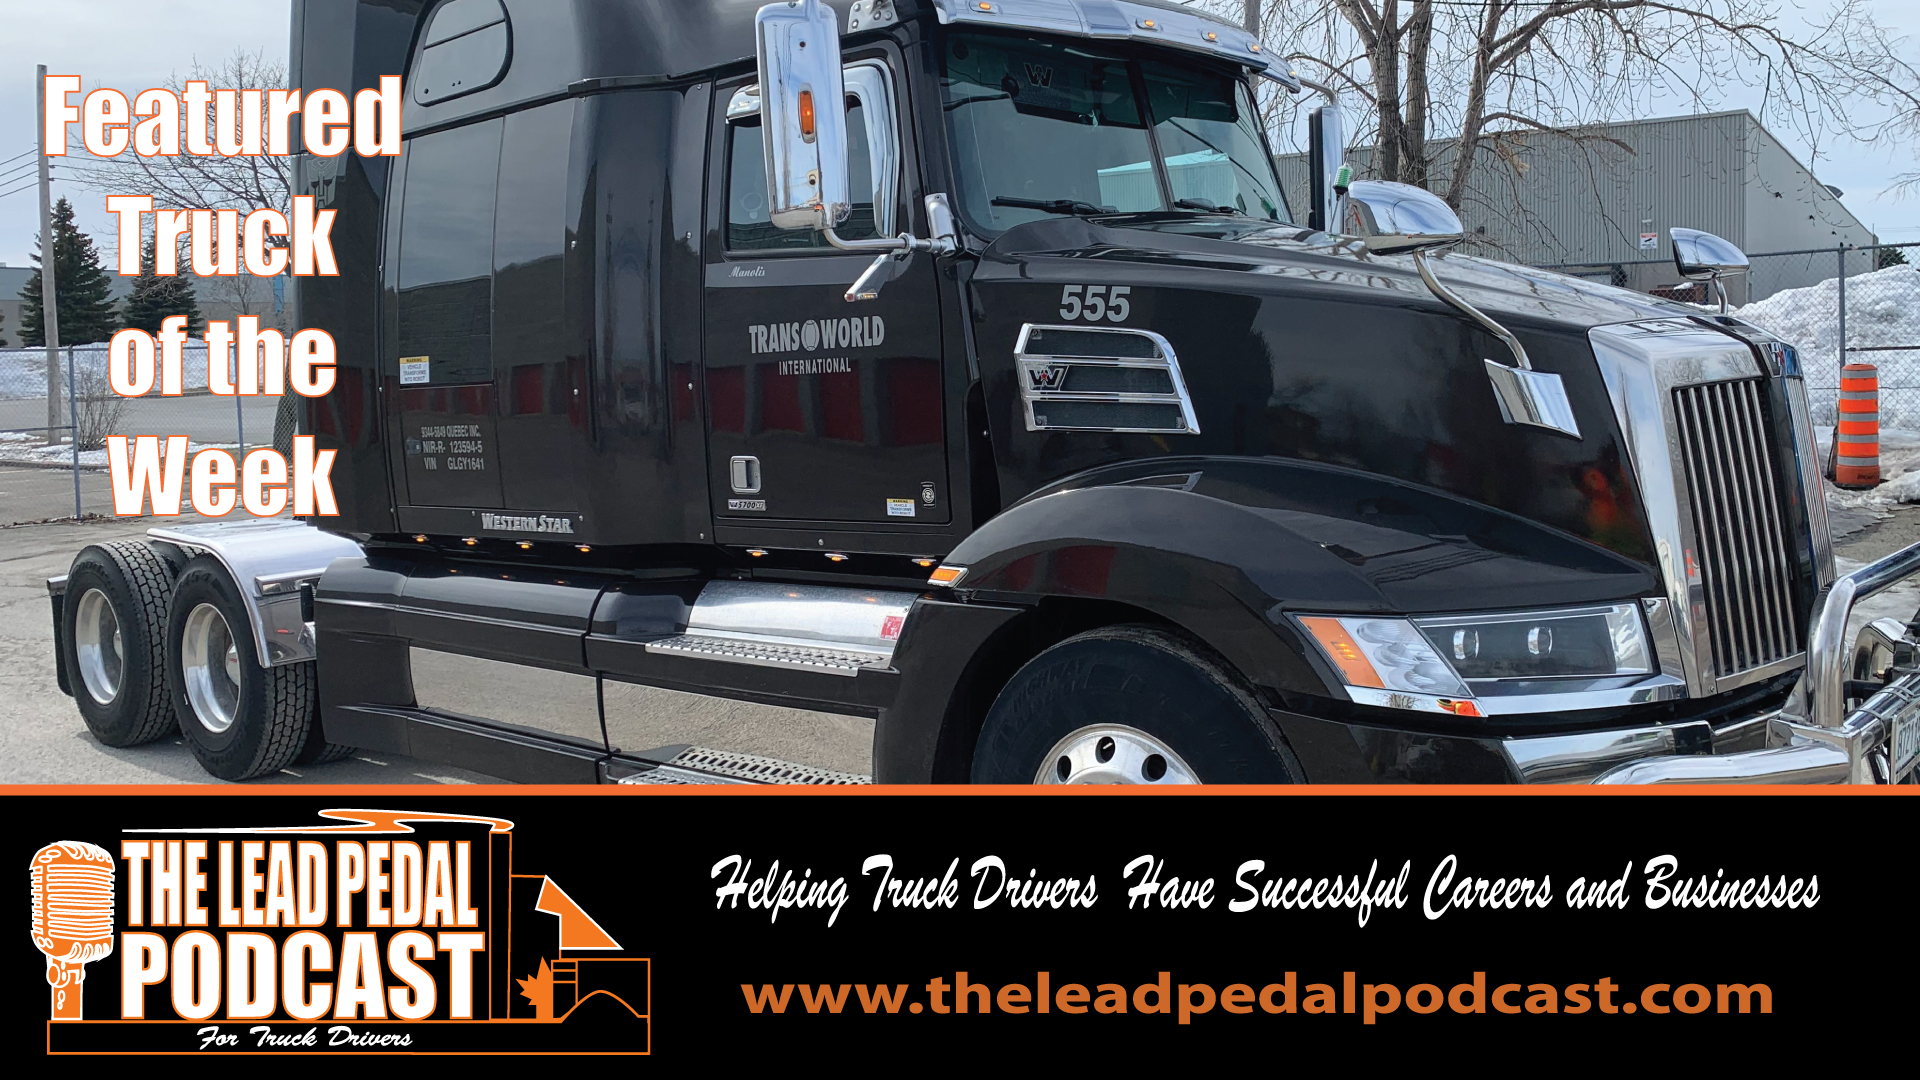 LP618 Featured Truck of the Week-Black 5700 Western Star